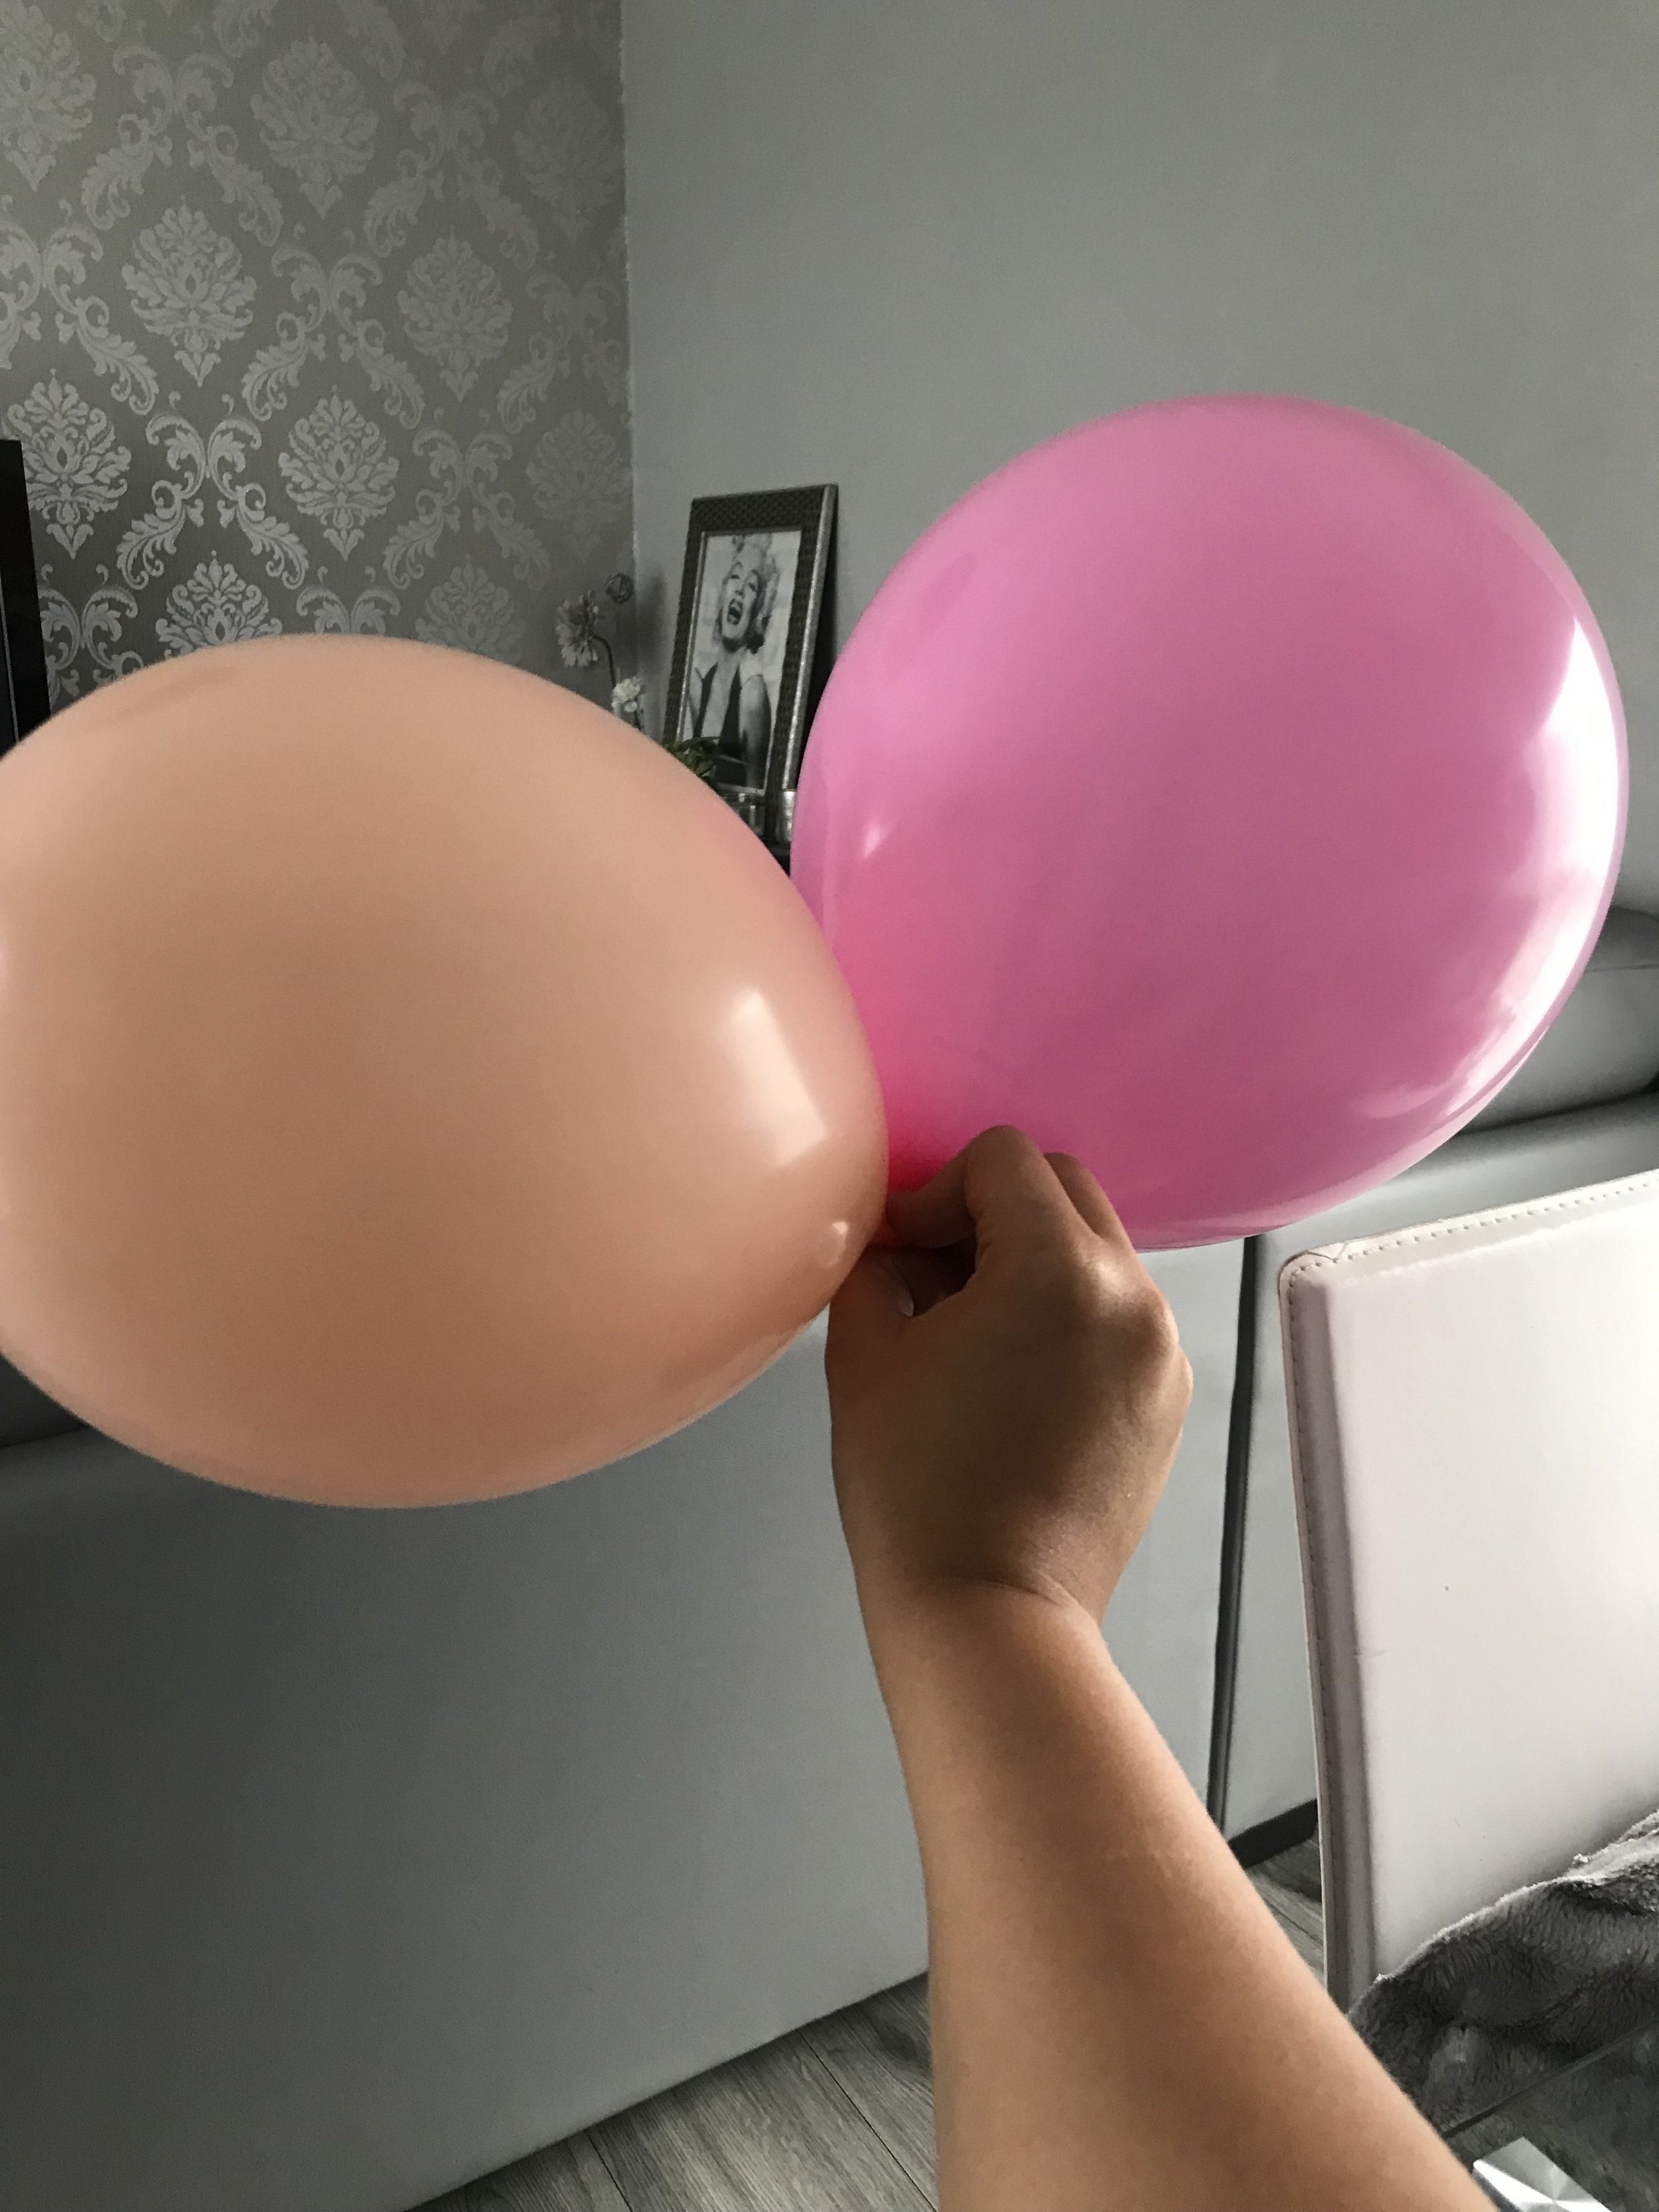 Begin by blowing up your first  balloon...